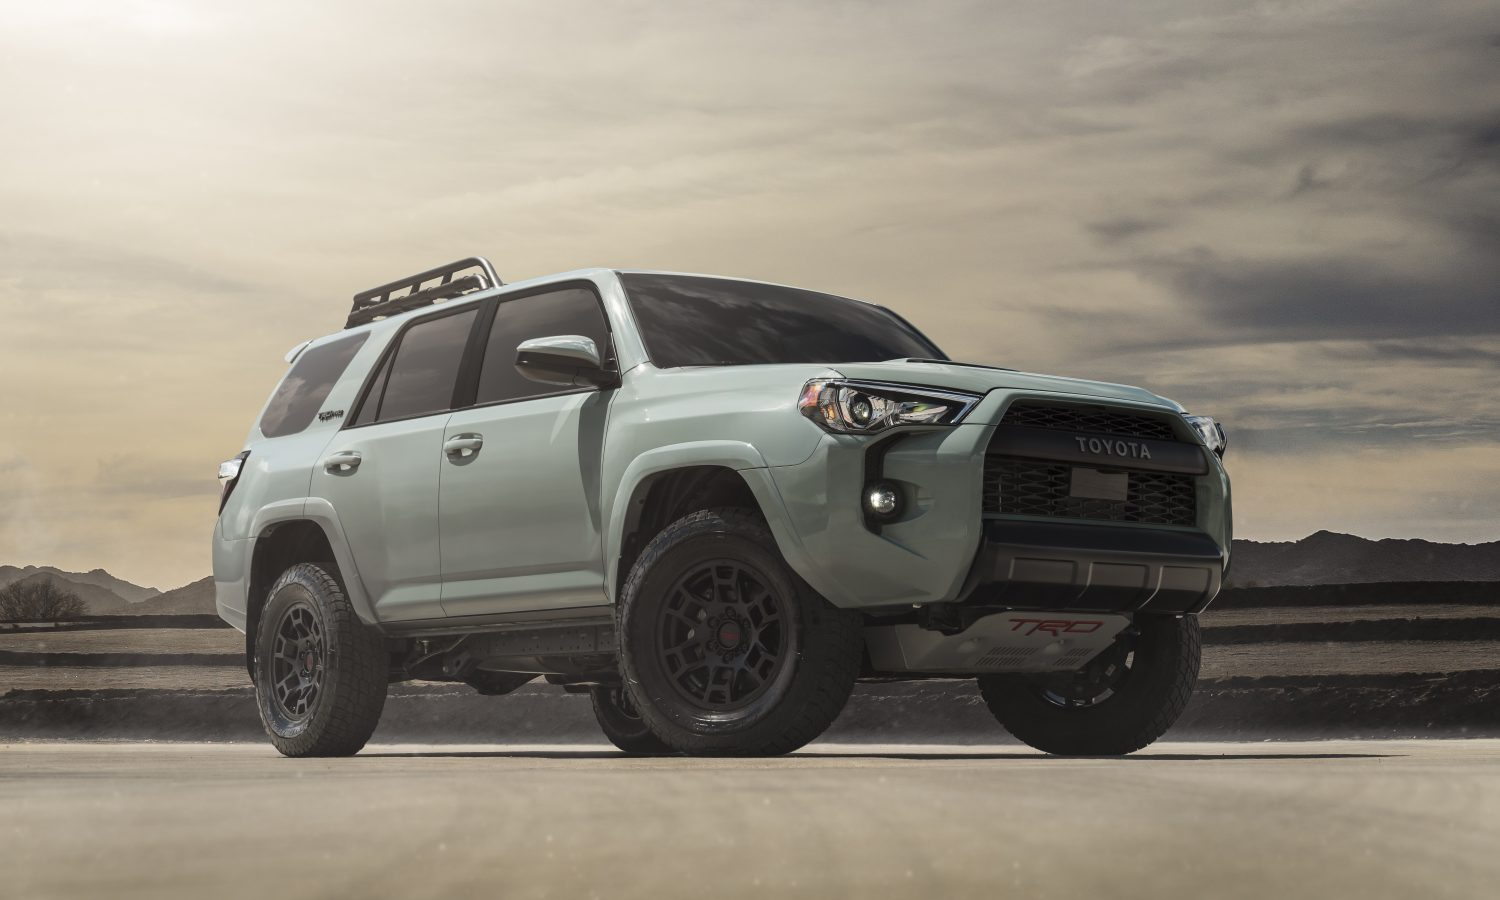 4runner Rolls Out Pricing Special Edition And New Look For 2021 Models Toyota Usa Newsroom